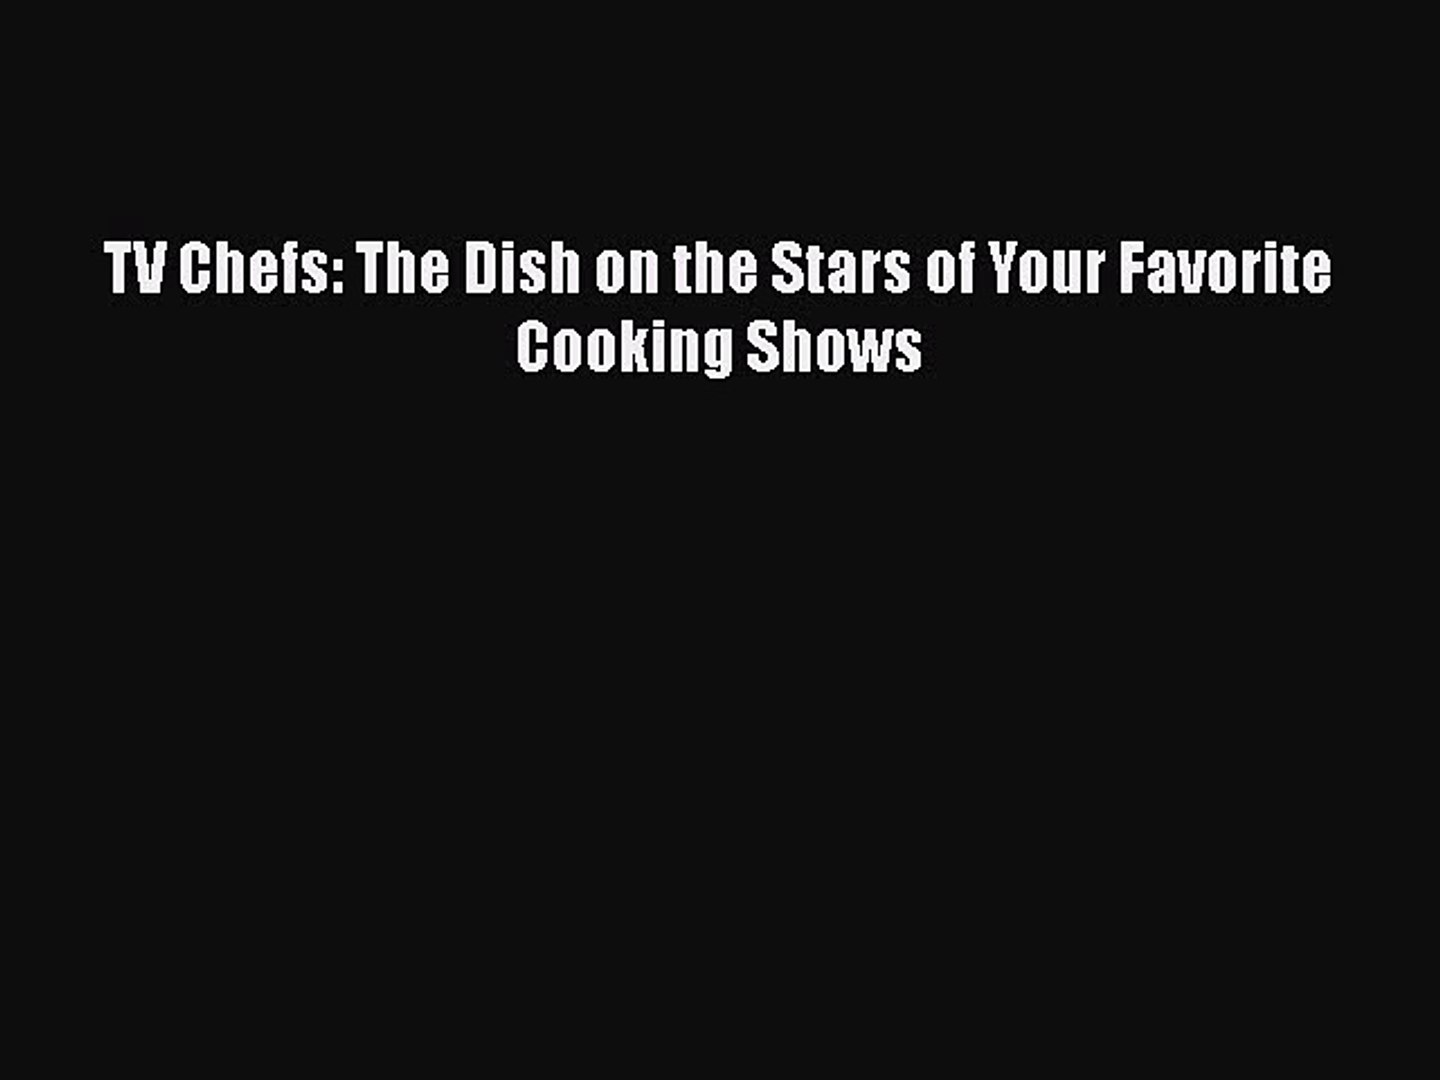 Download TV Chefs: The Dish on the Stars of Your Favorite Cooking Shows Ebook Online